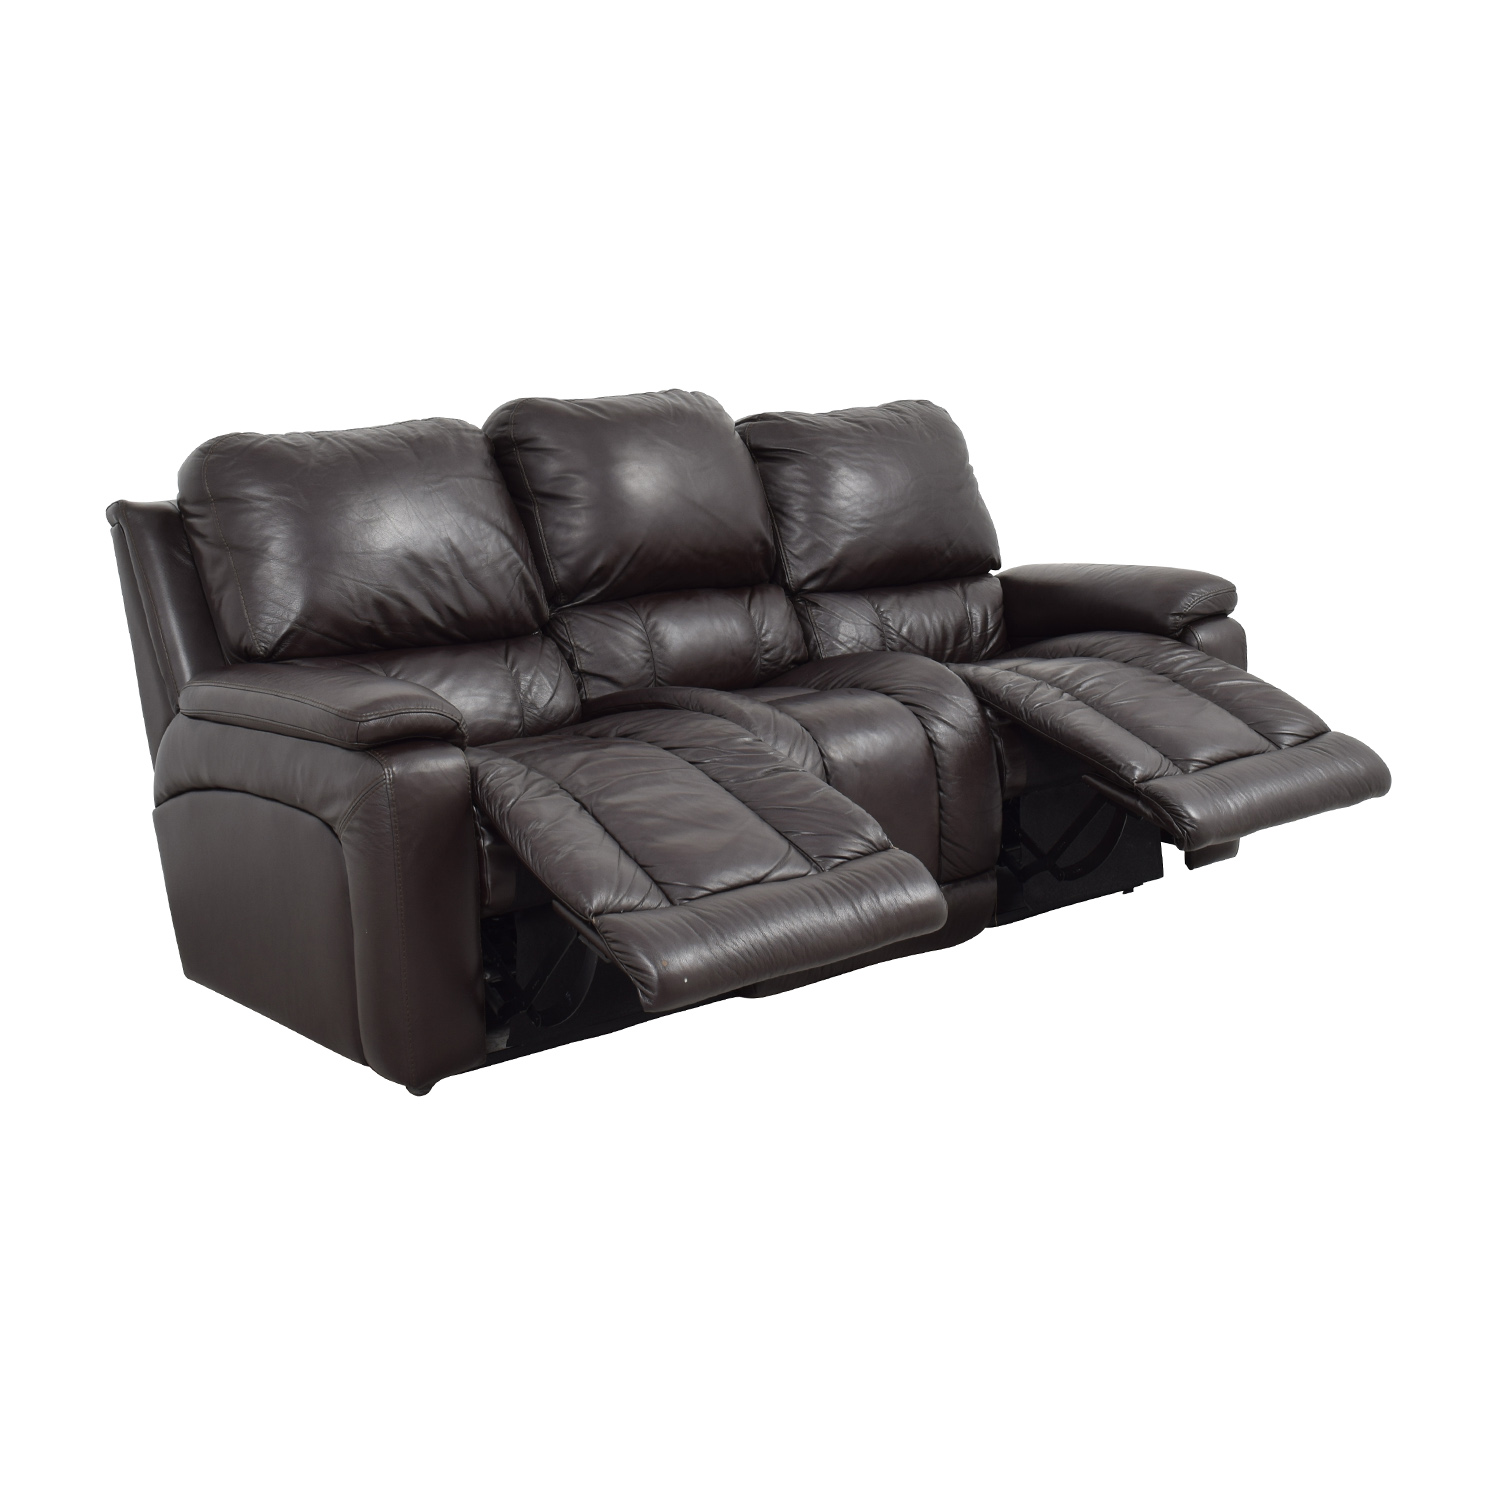 Used Lazy Boy Sofa Used Lazy Boy Sectional For Couch Cioccolatadivino Thesofa